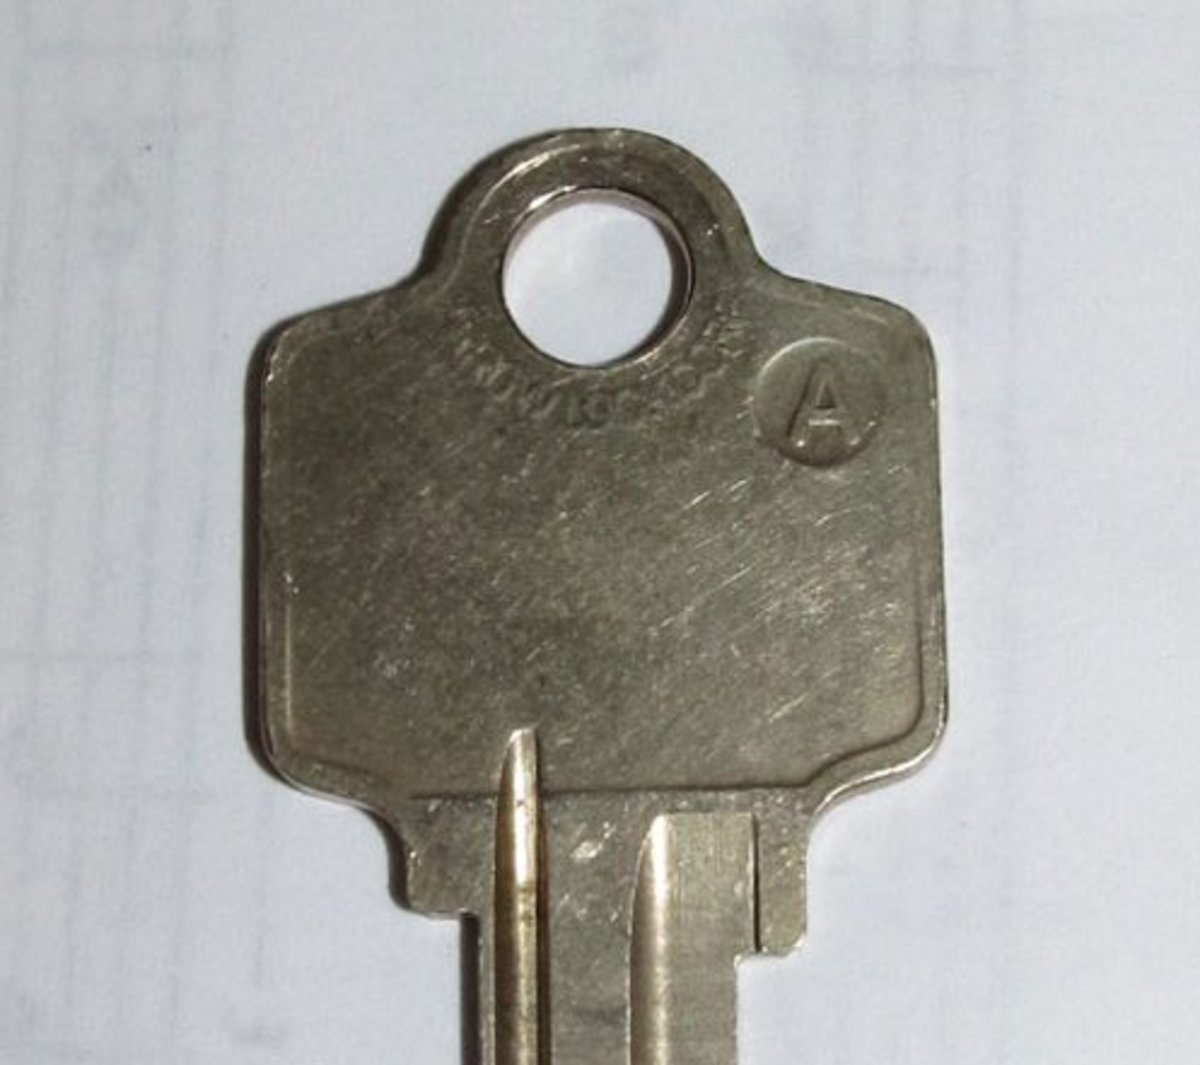 Figure 6 - An Arrow Lock Company Original Key Blank